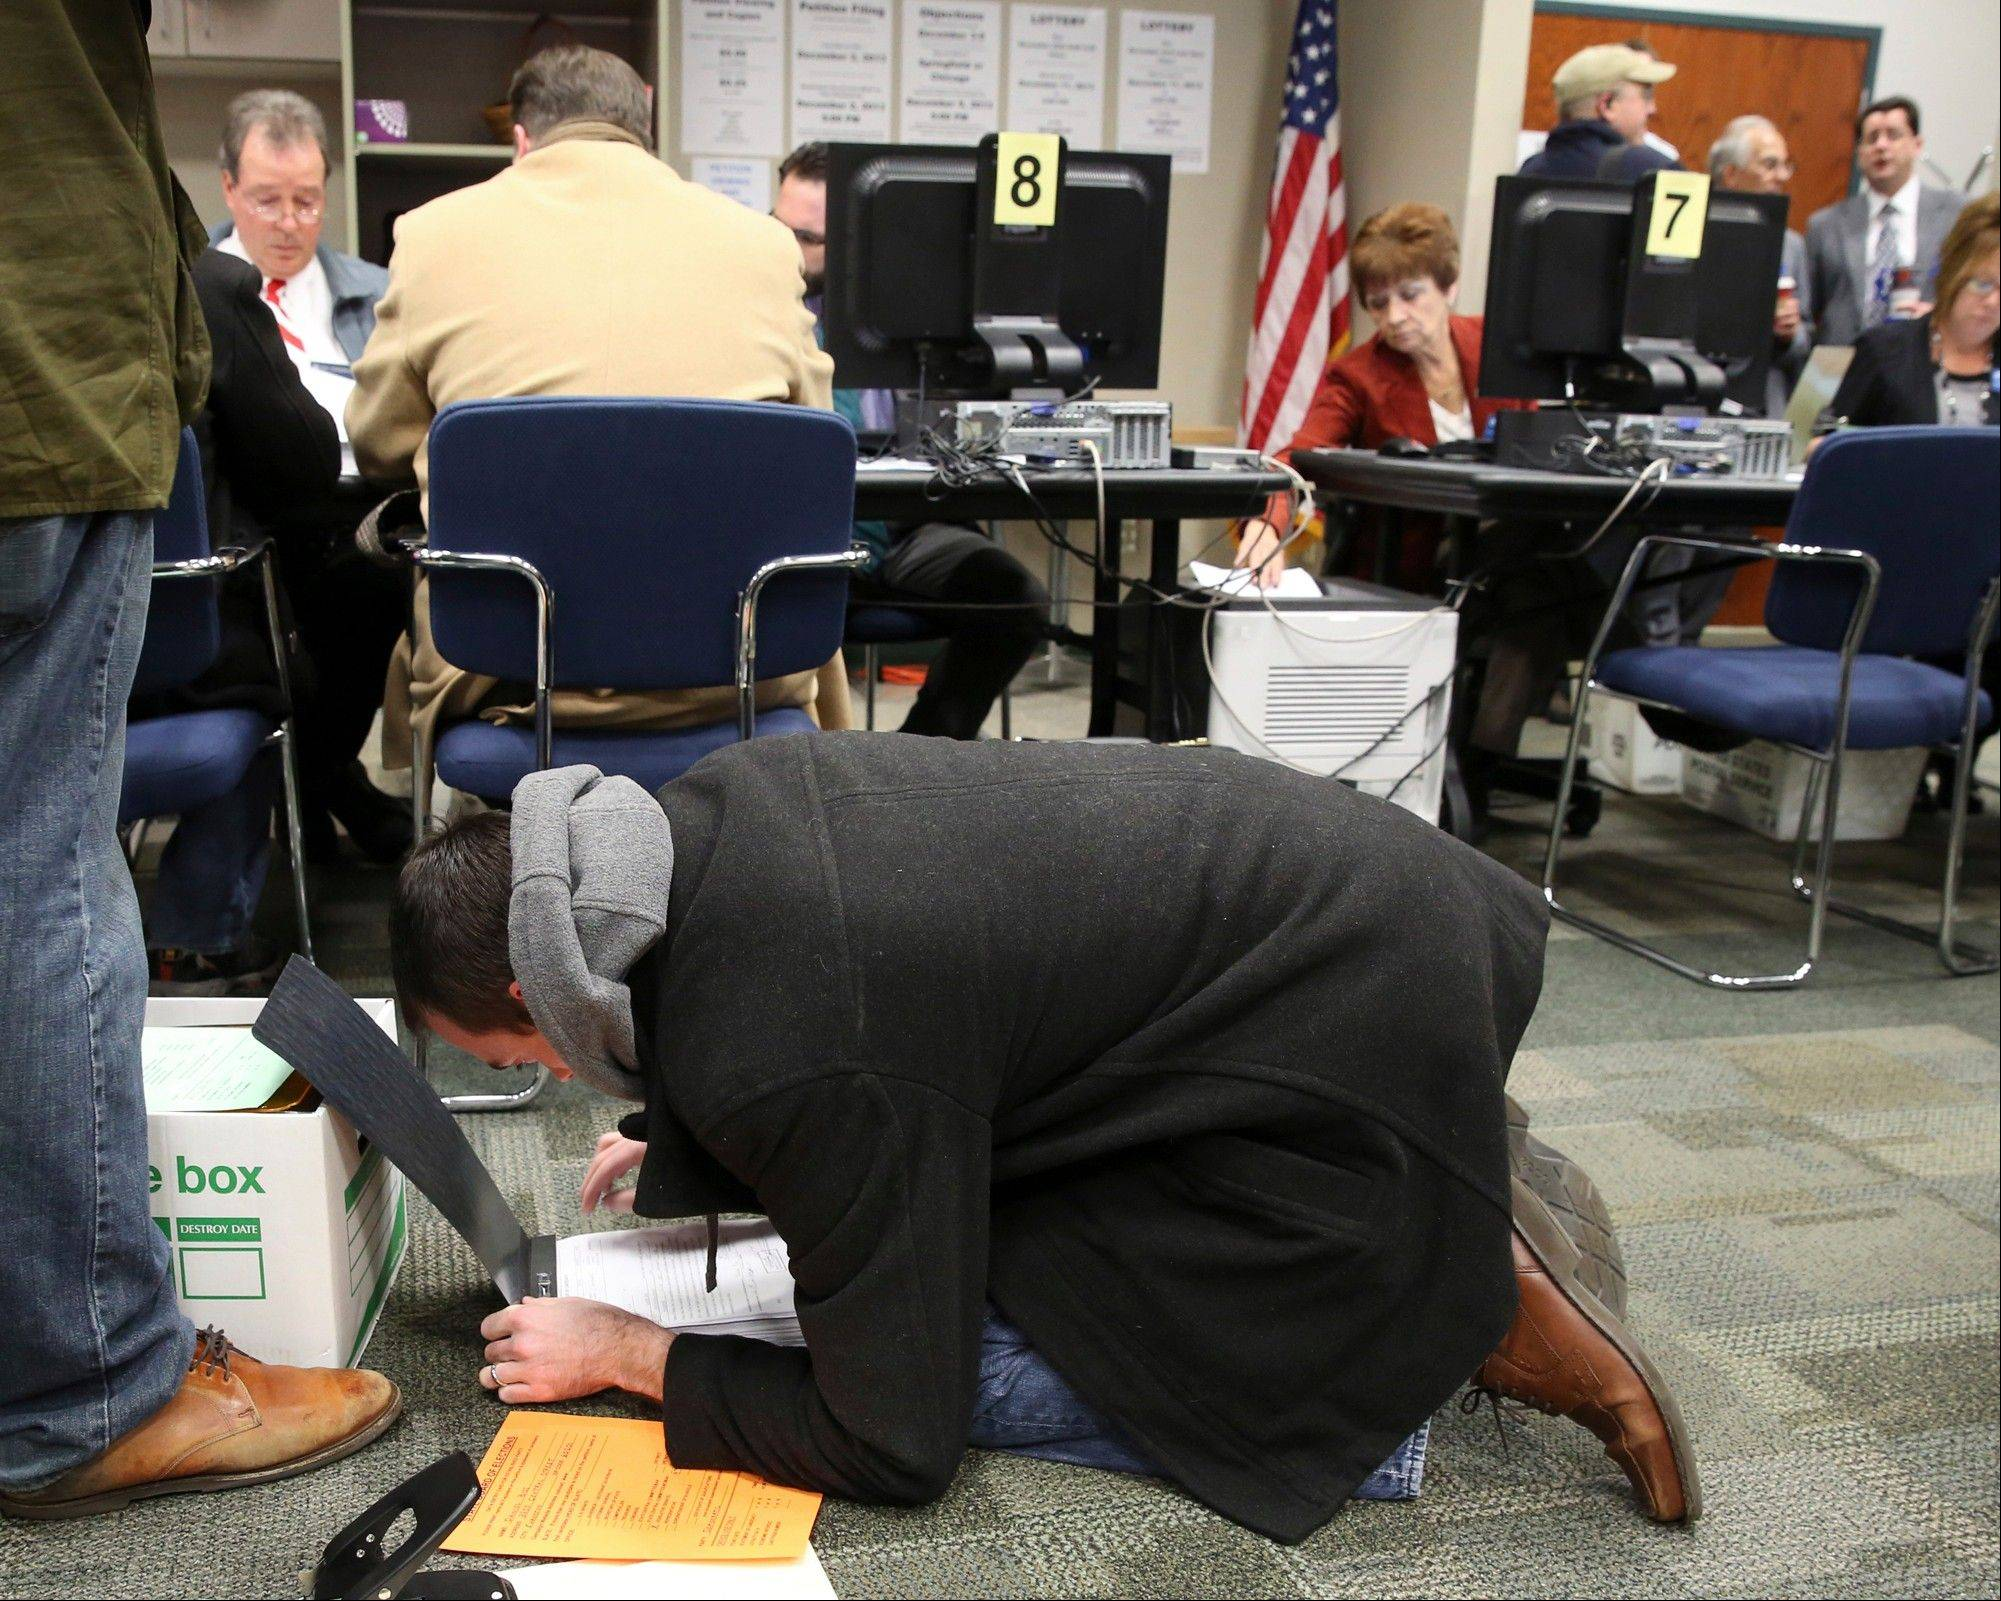 Jake Butcher attaches paperwork to petitions he filed on behalf of Illinois Senate Democratic candidates Monday at the Illinois State Board of Elections office in Springfield.